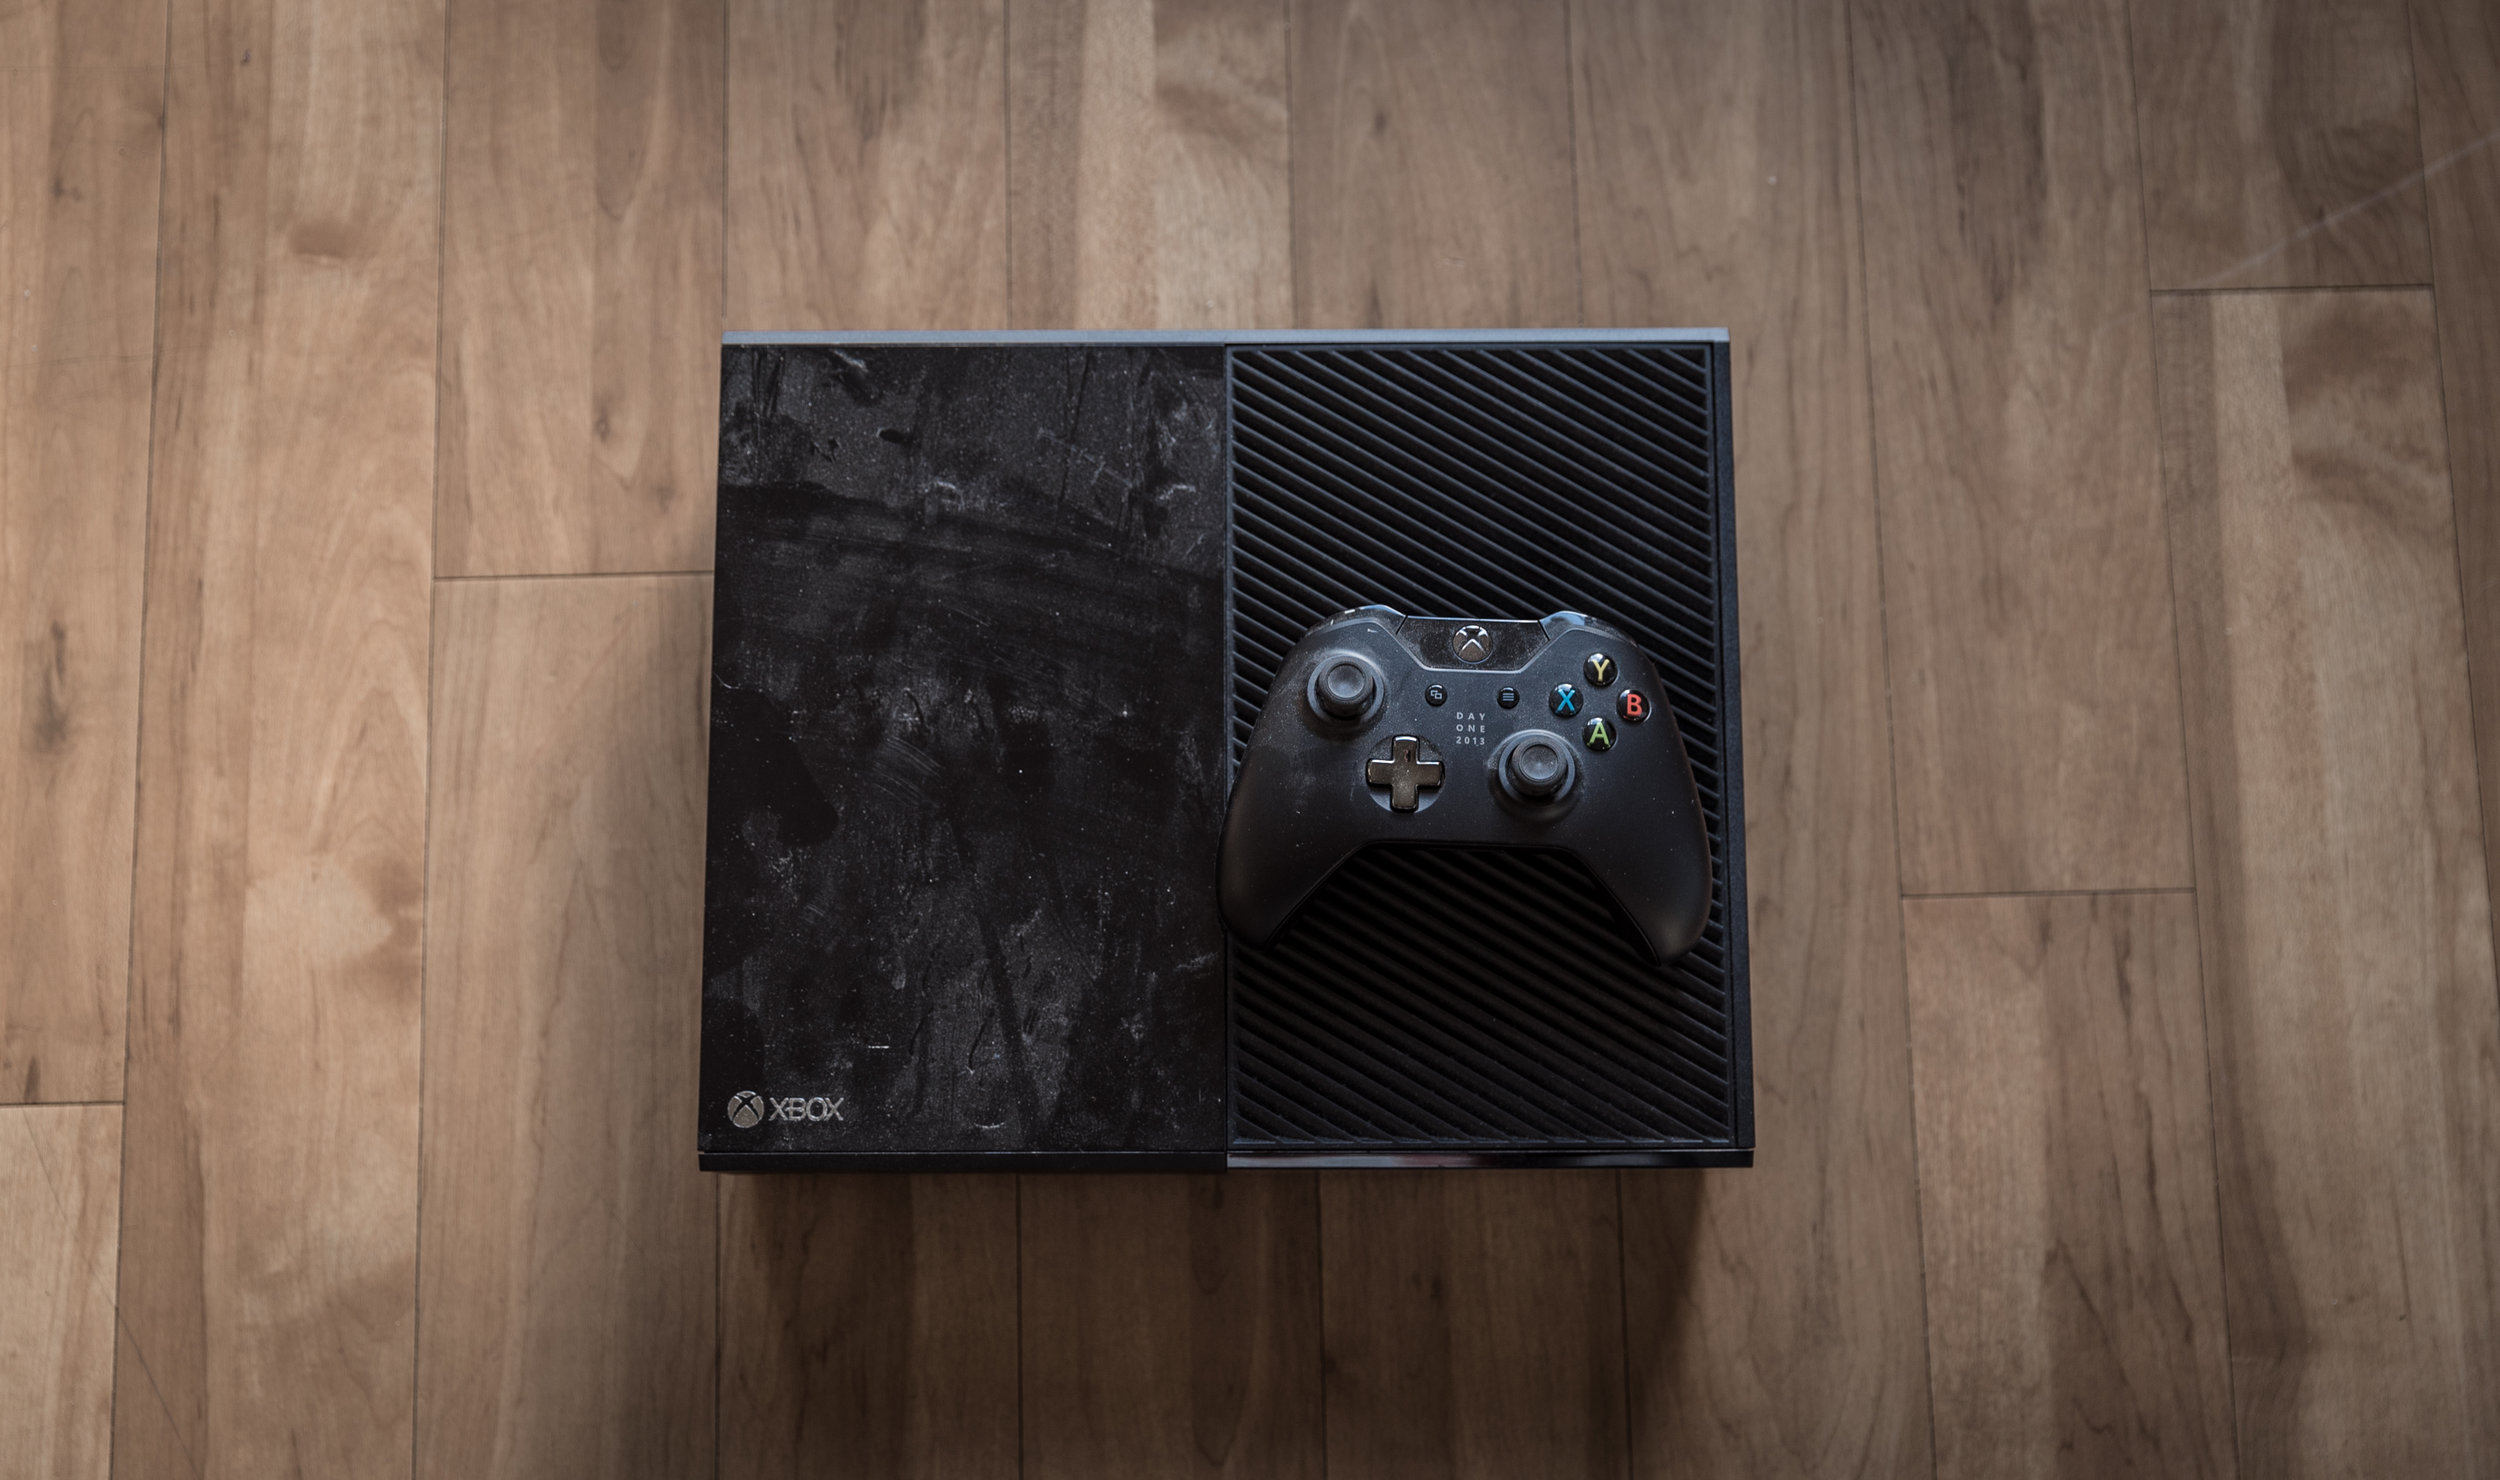 XBOX ONE that I've only used for 5 hours.